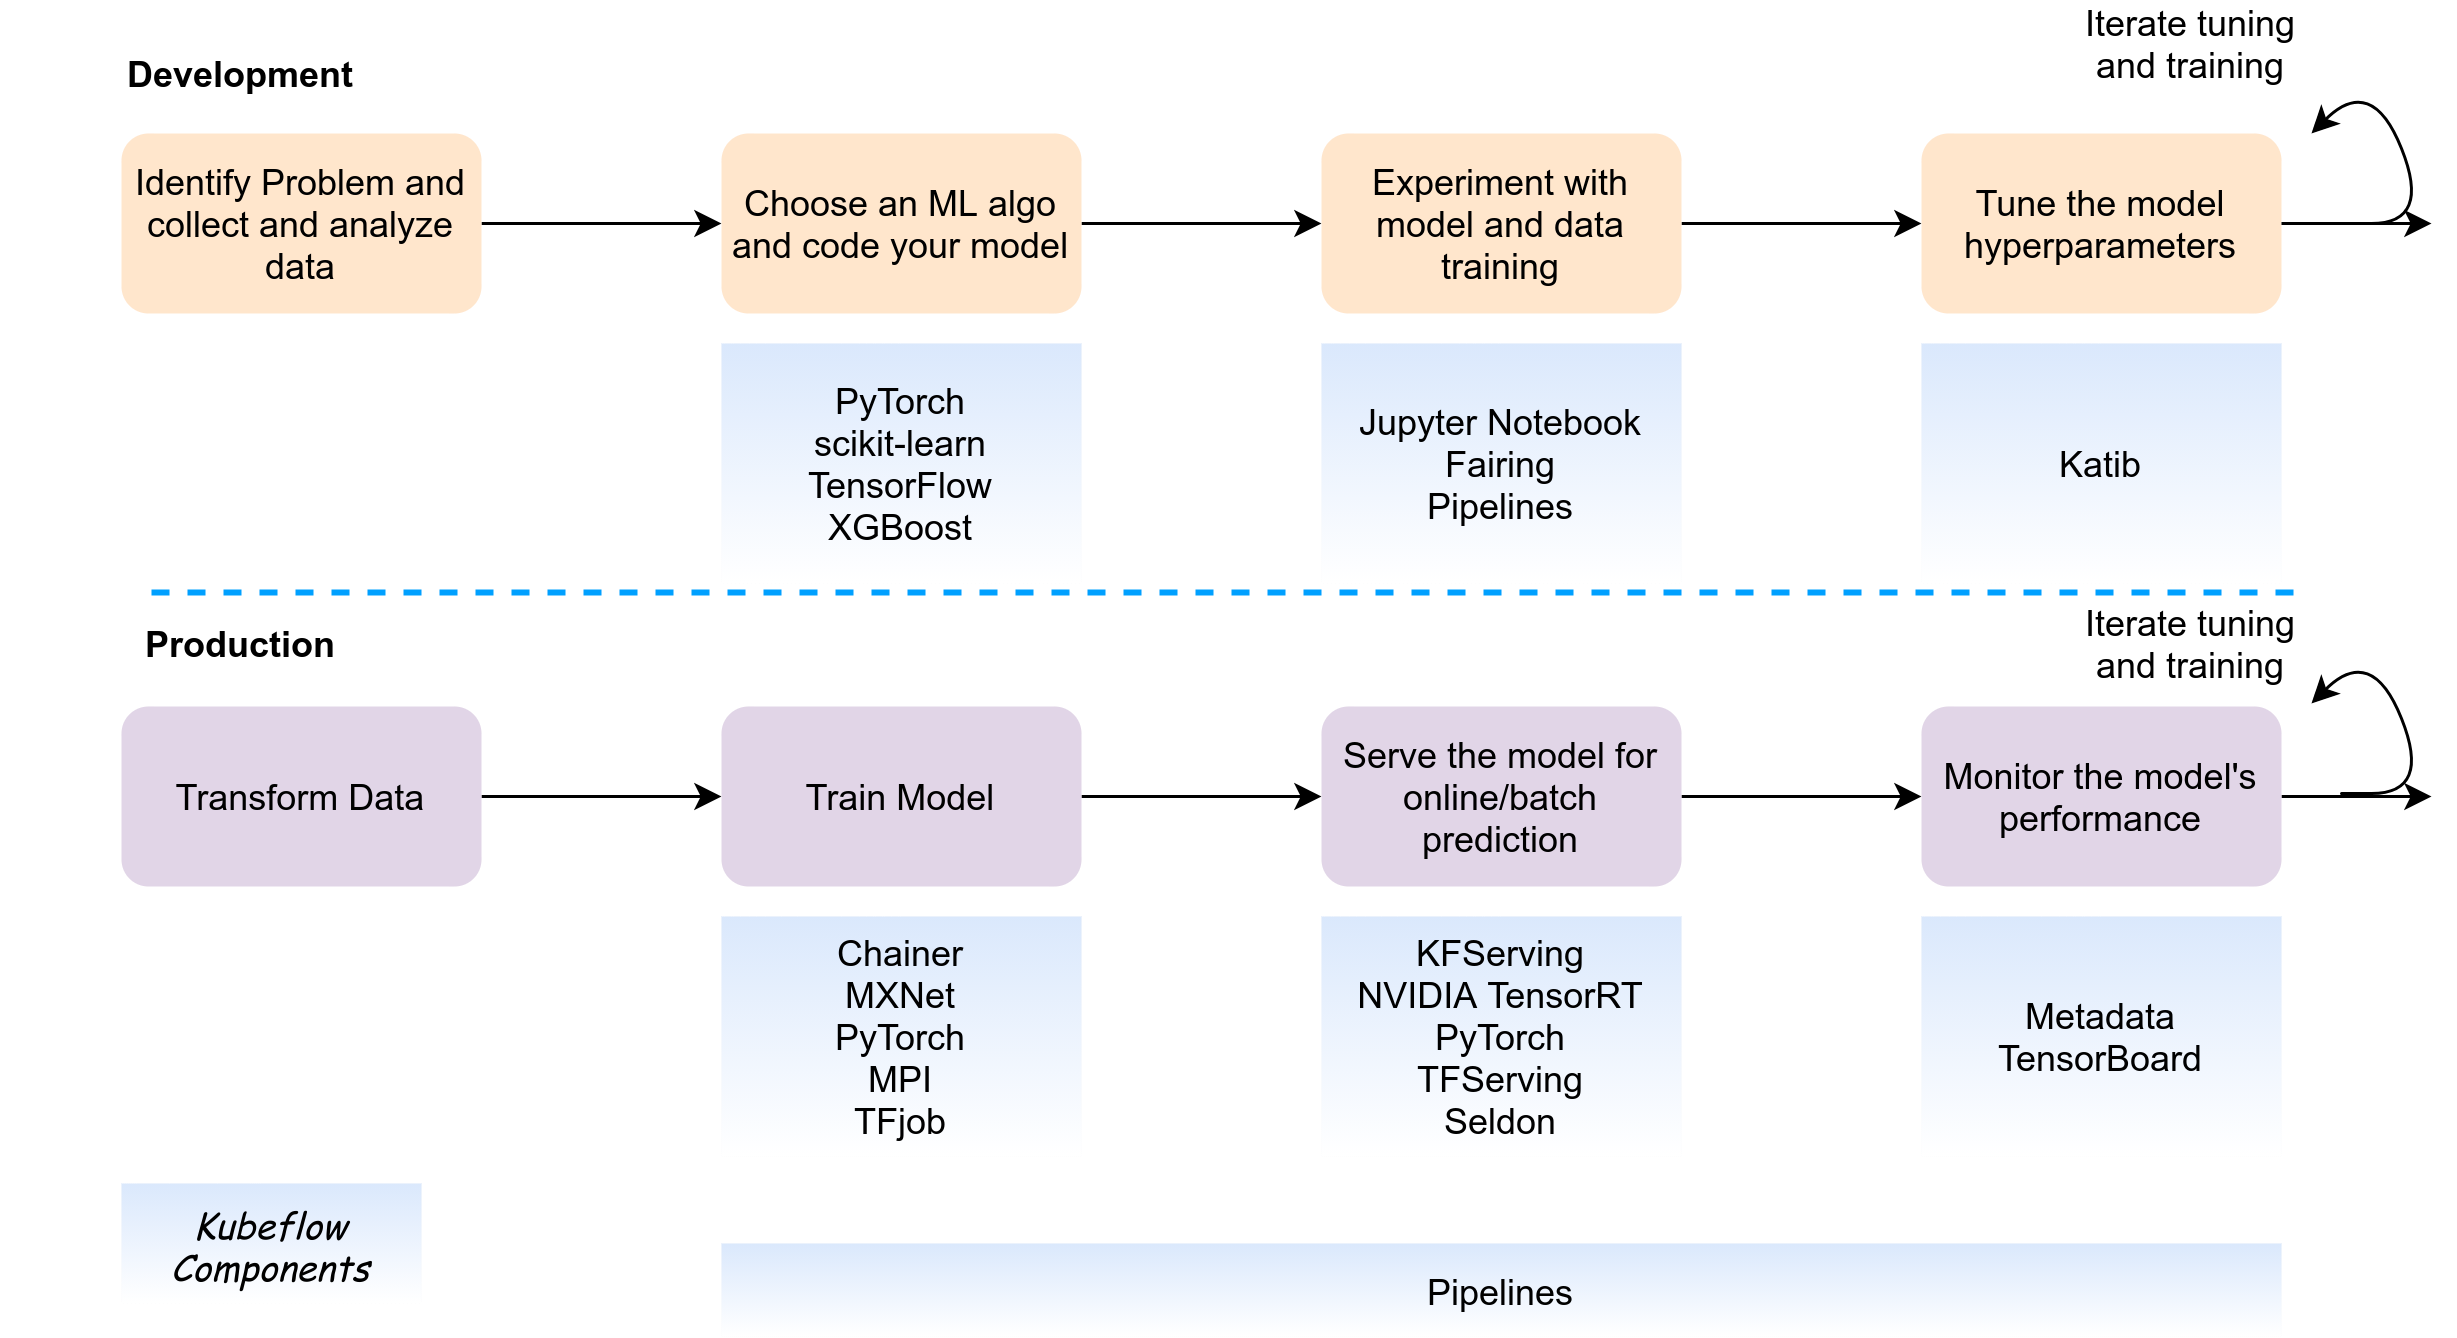 Example ML Workflow and Kubeflow components